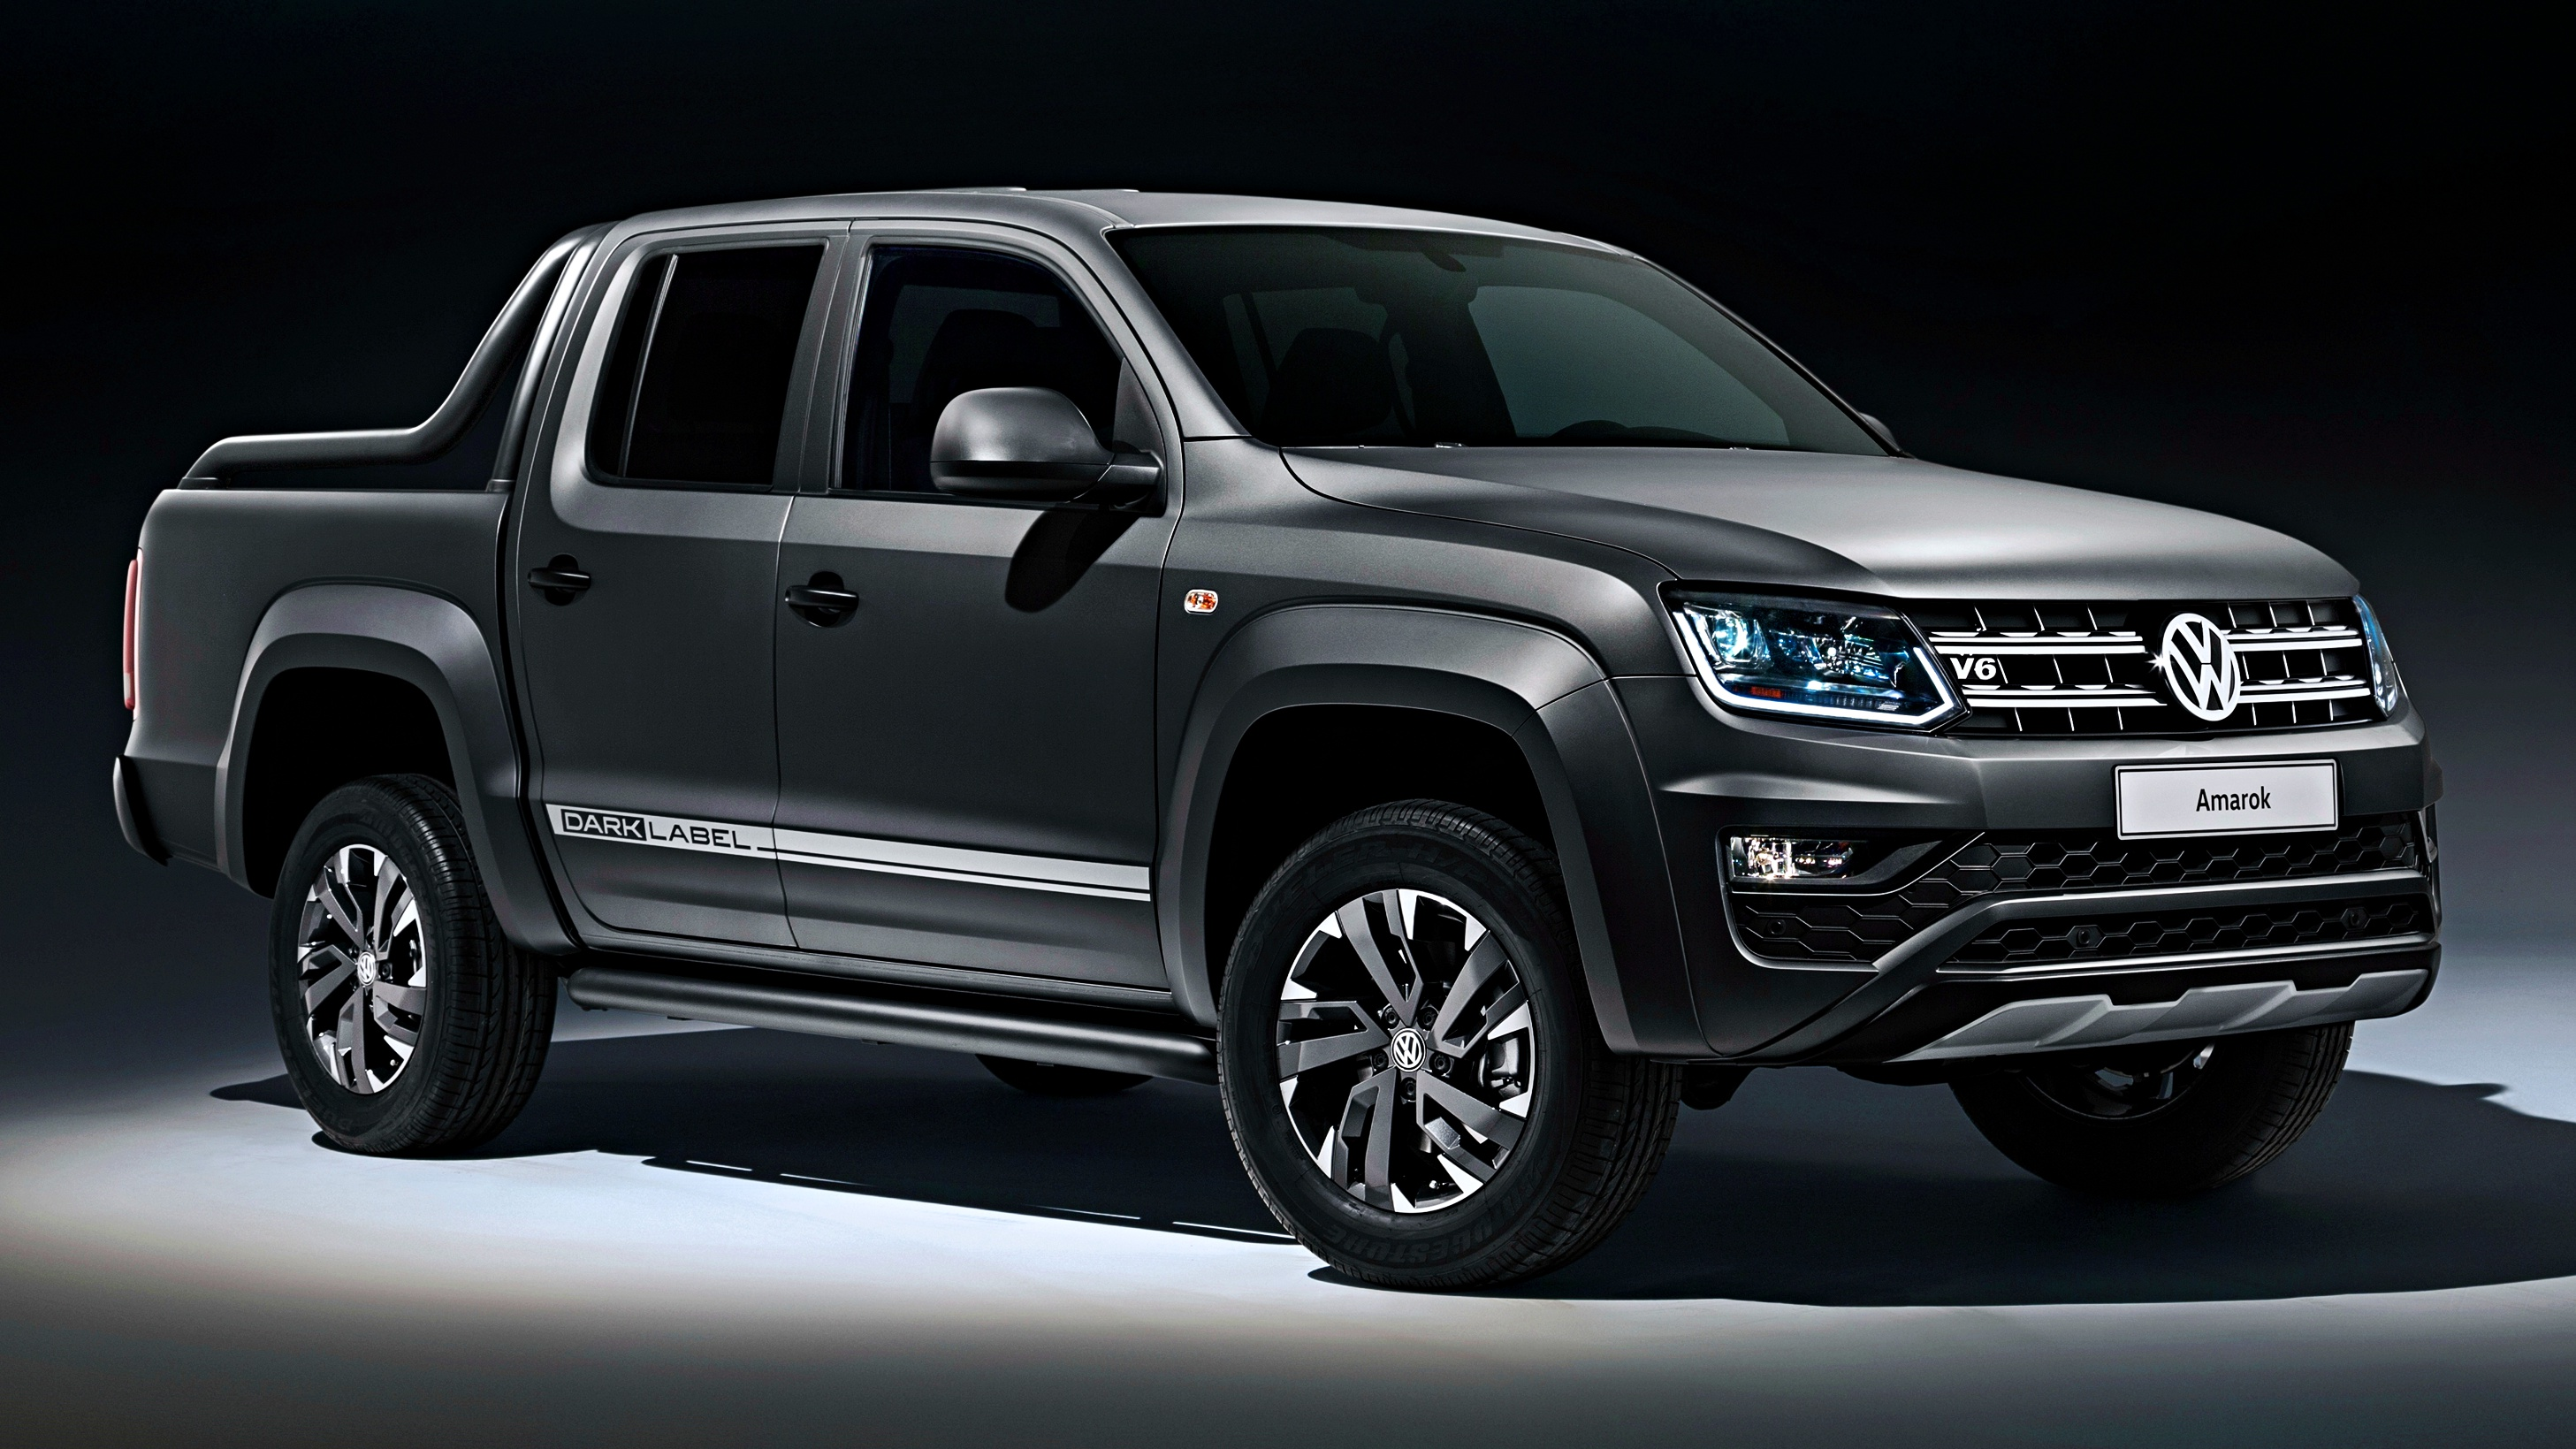 News - Volkswagen Amarok V6 Dark Label Coming April